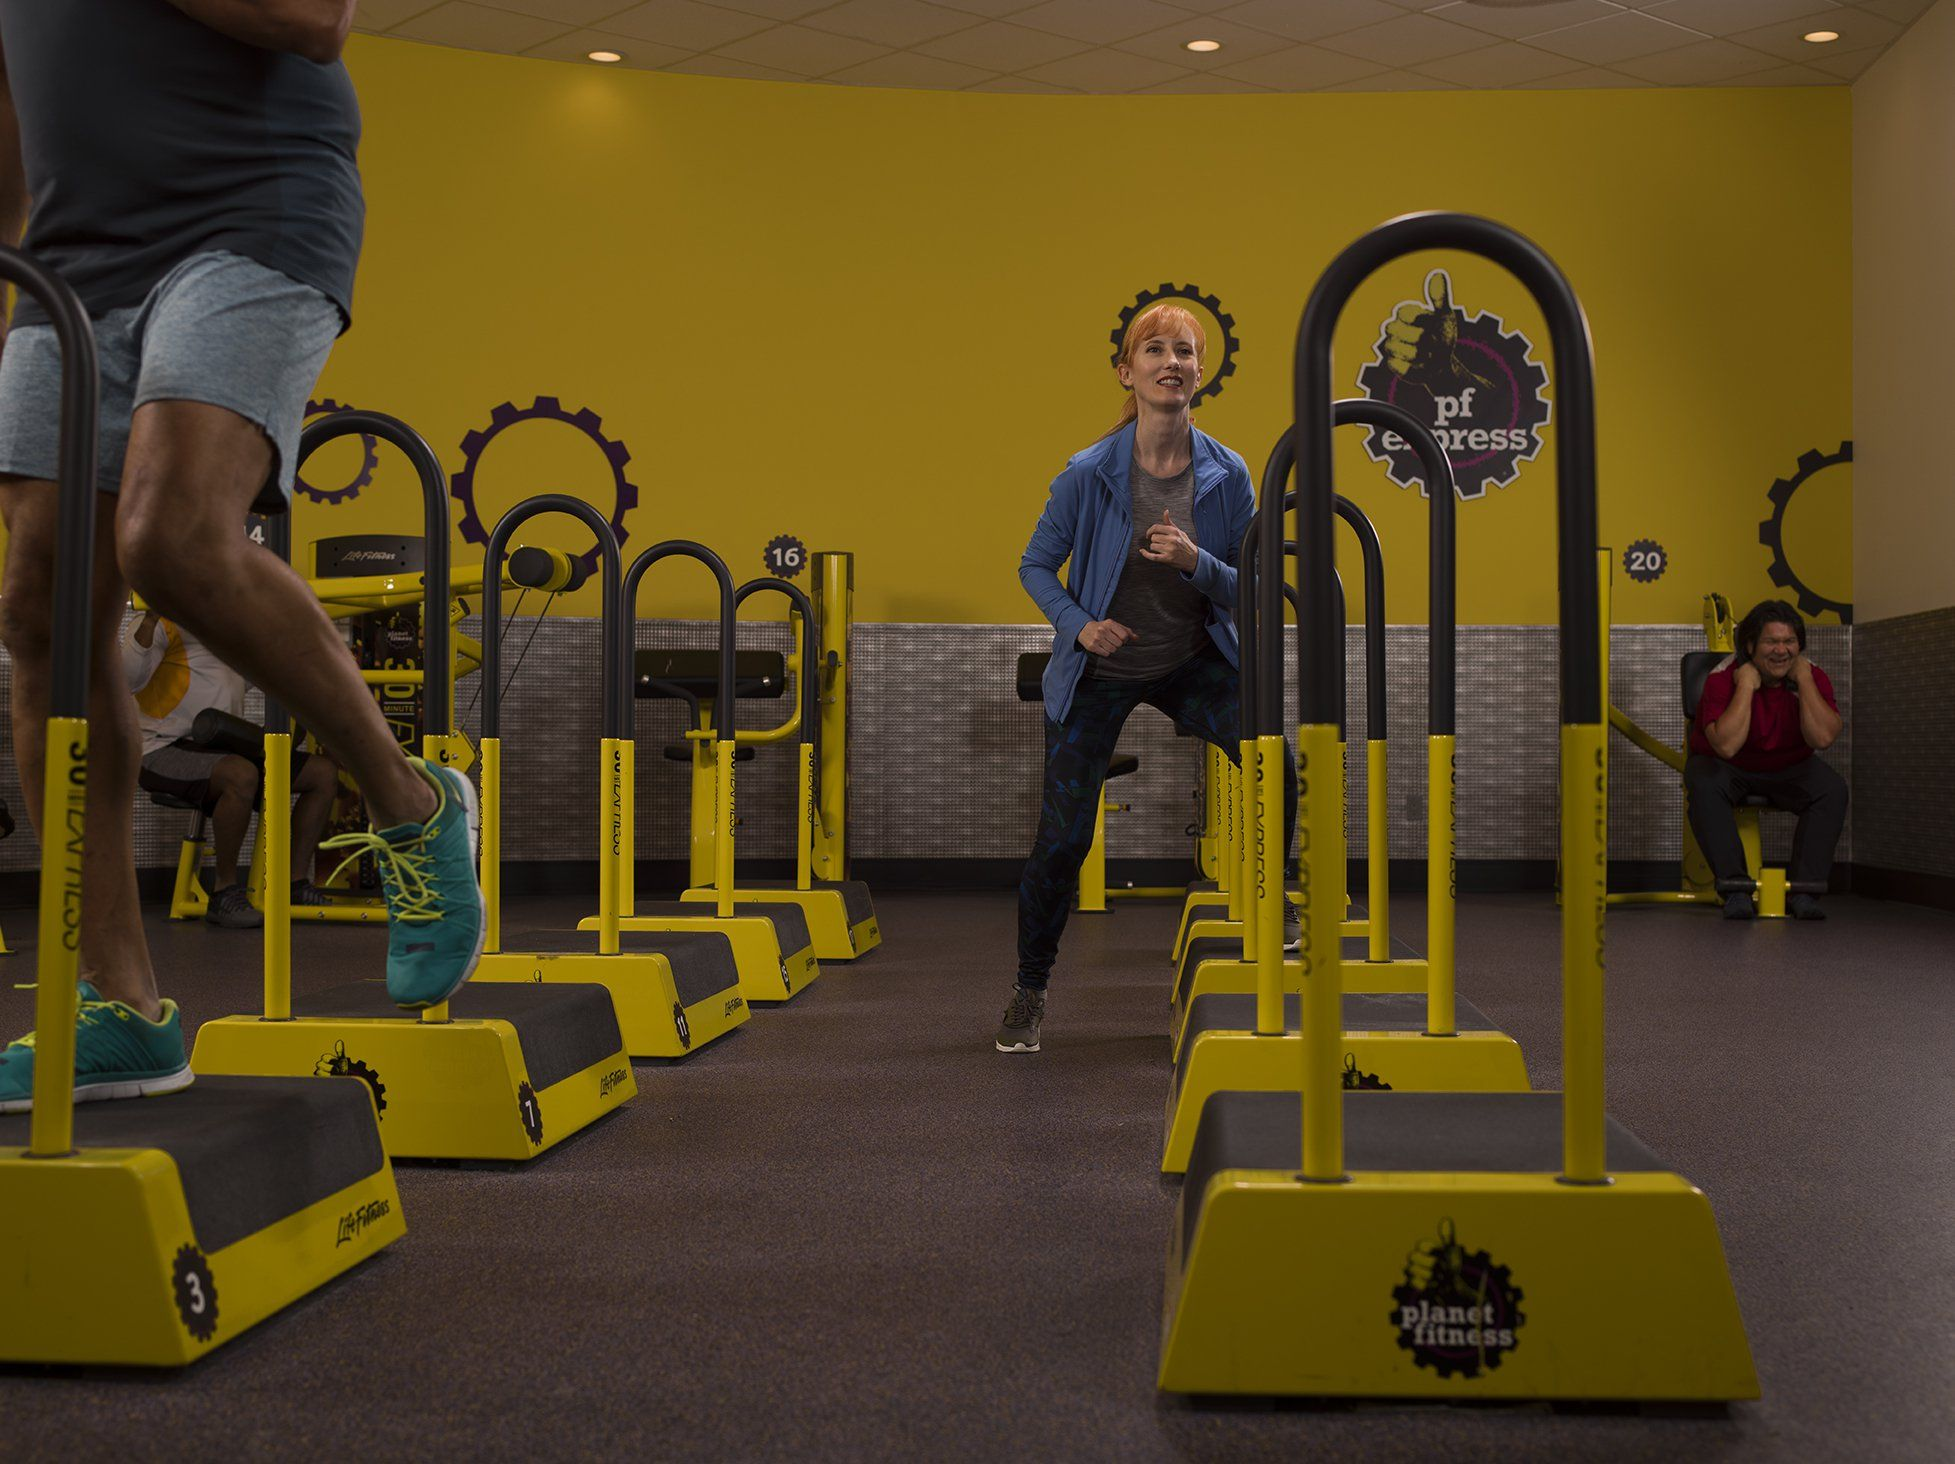 Woman Doing Step Ups In A Planet Fitness 30 Minute Circuit Area Planet Fitness Workout Circuit Workout Planet Fitness Workout Plan